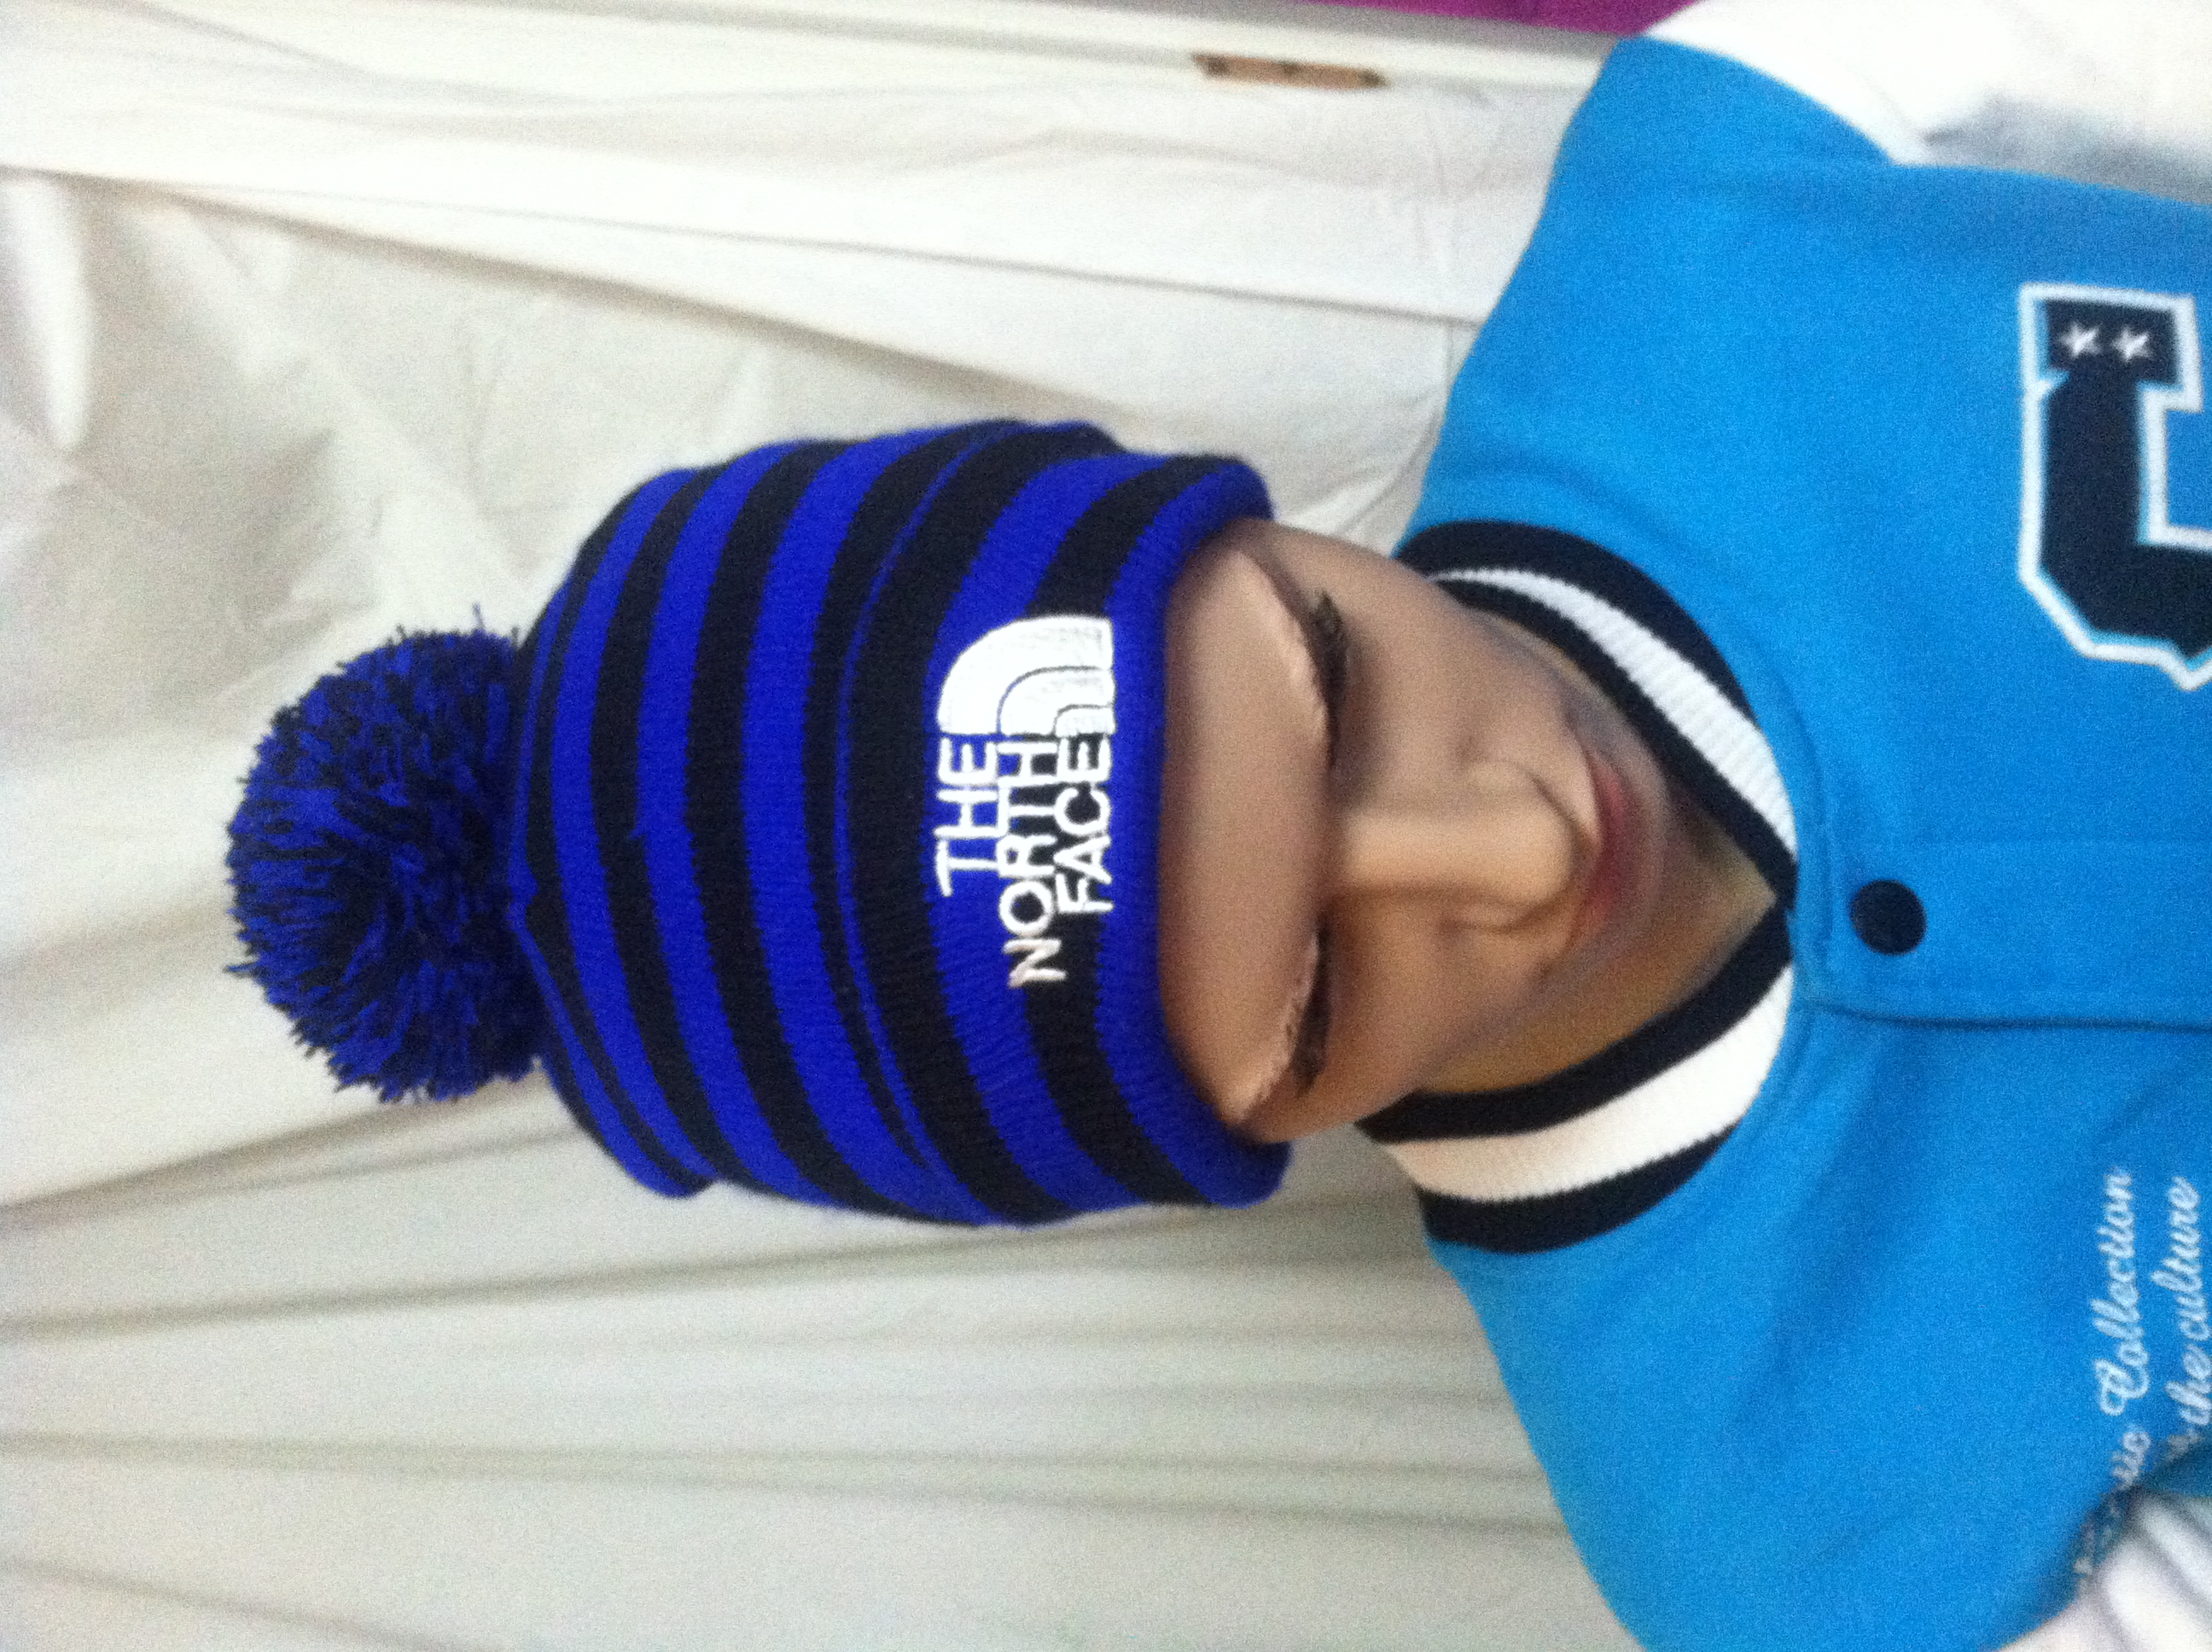 e8d56a59eb8 Men s Royal Blue and Black Striped The North Face Winter Hat Beanie ...